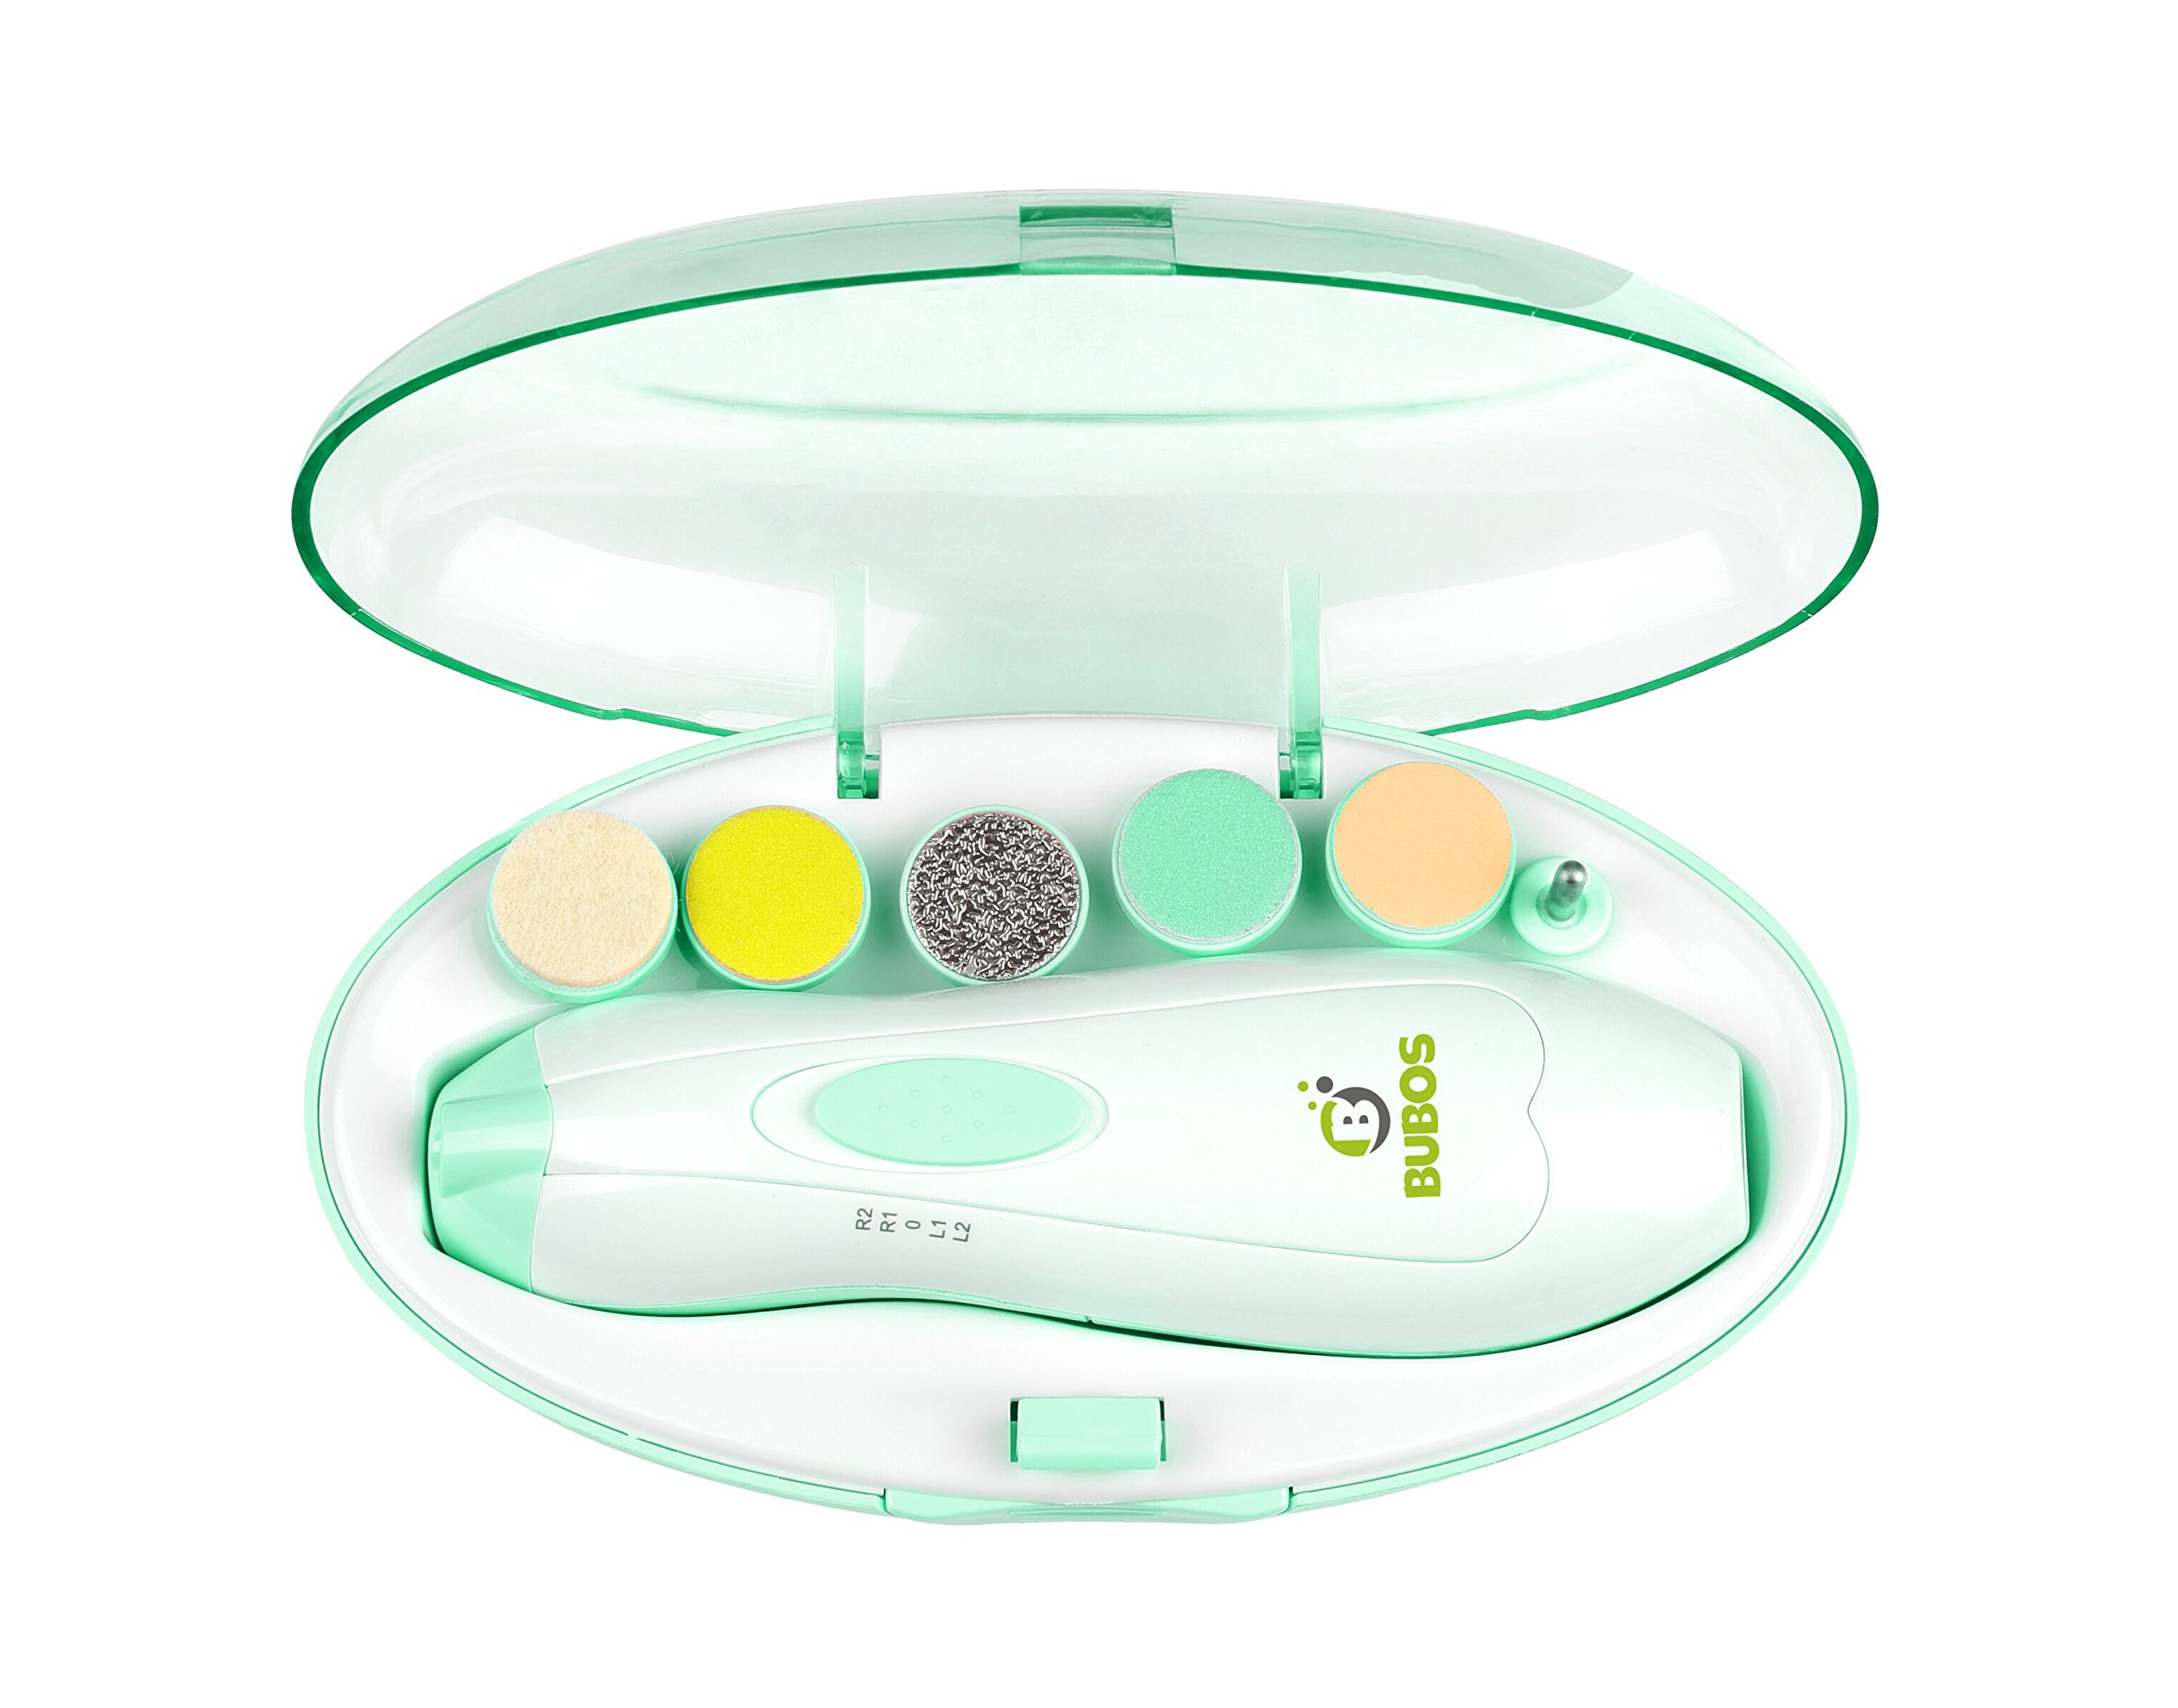 Bubos Baby Nail File Electric Manicure Set - Safe Baby Nail Clippers & Trimmer with LED Light, Toes Fingernails Care Trim Polish Grooming Kit for Newborn Infant Toddler Kids or Women